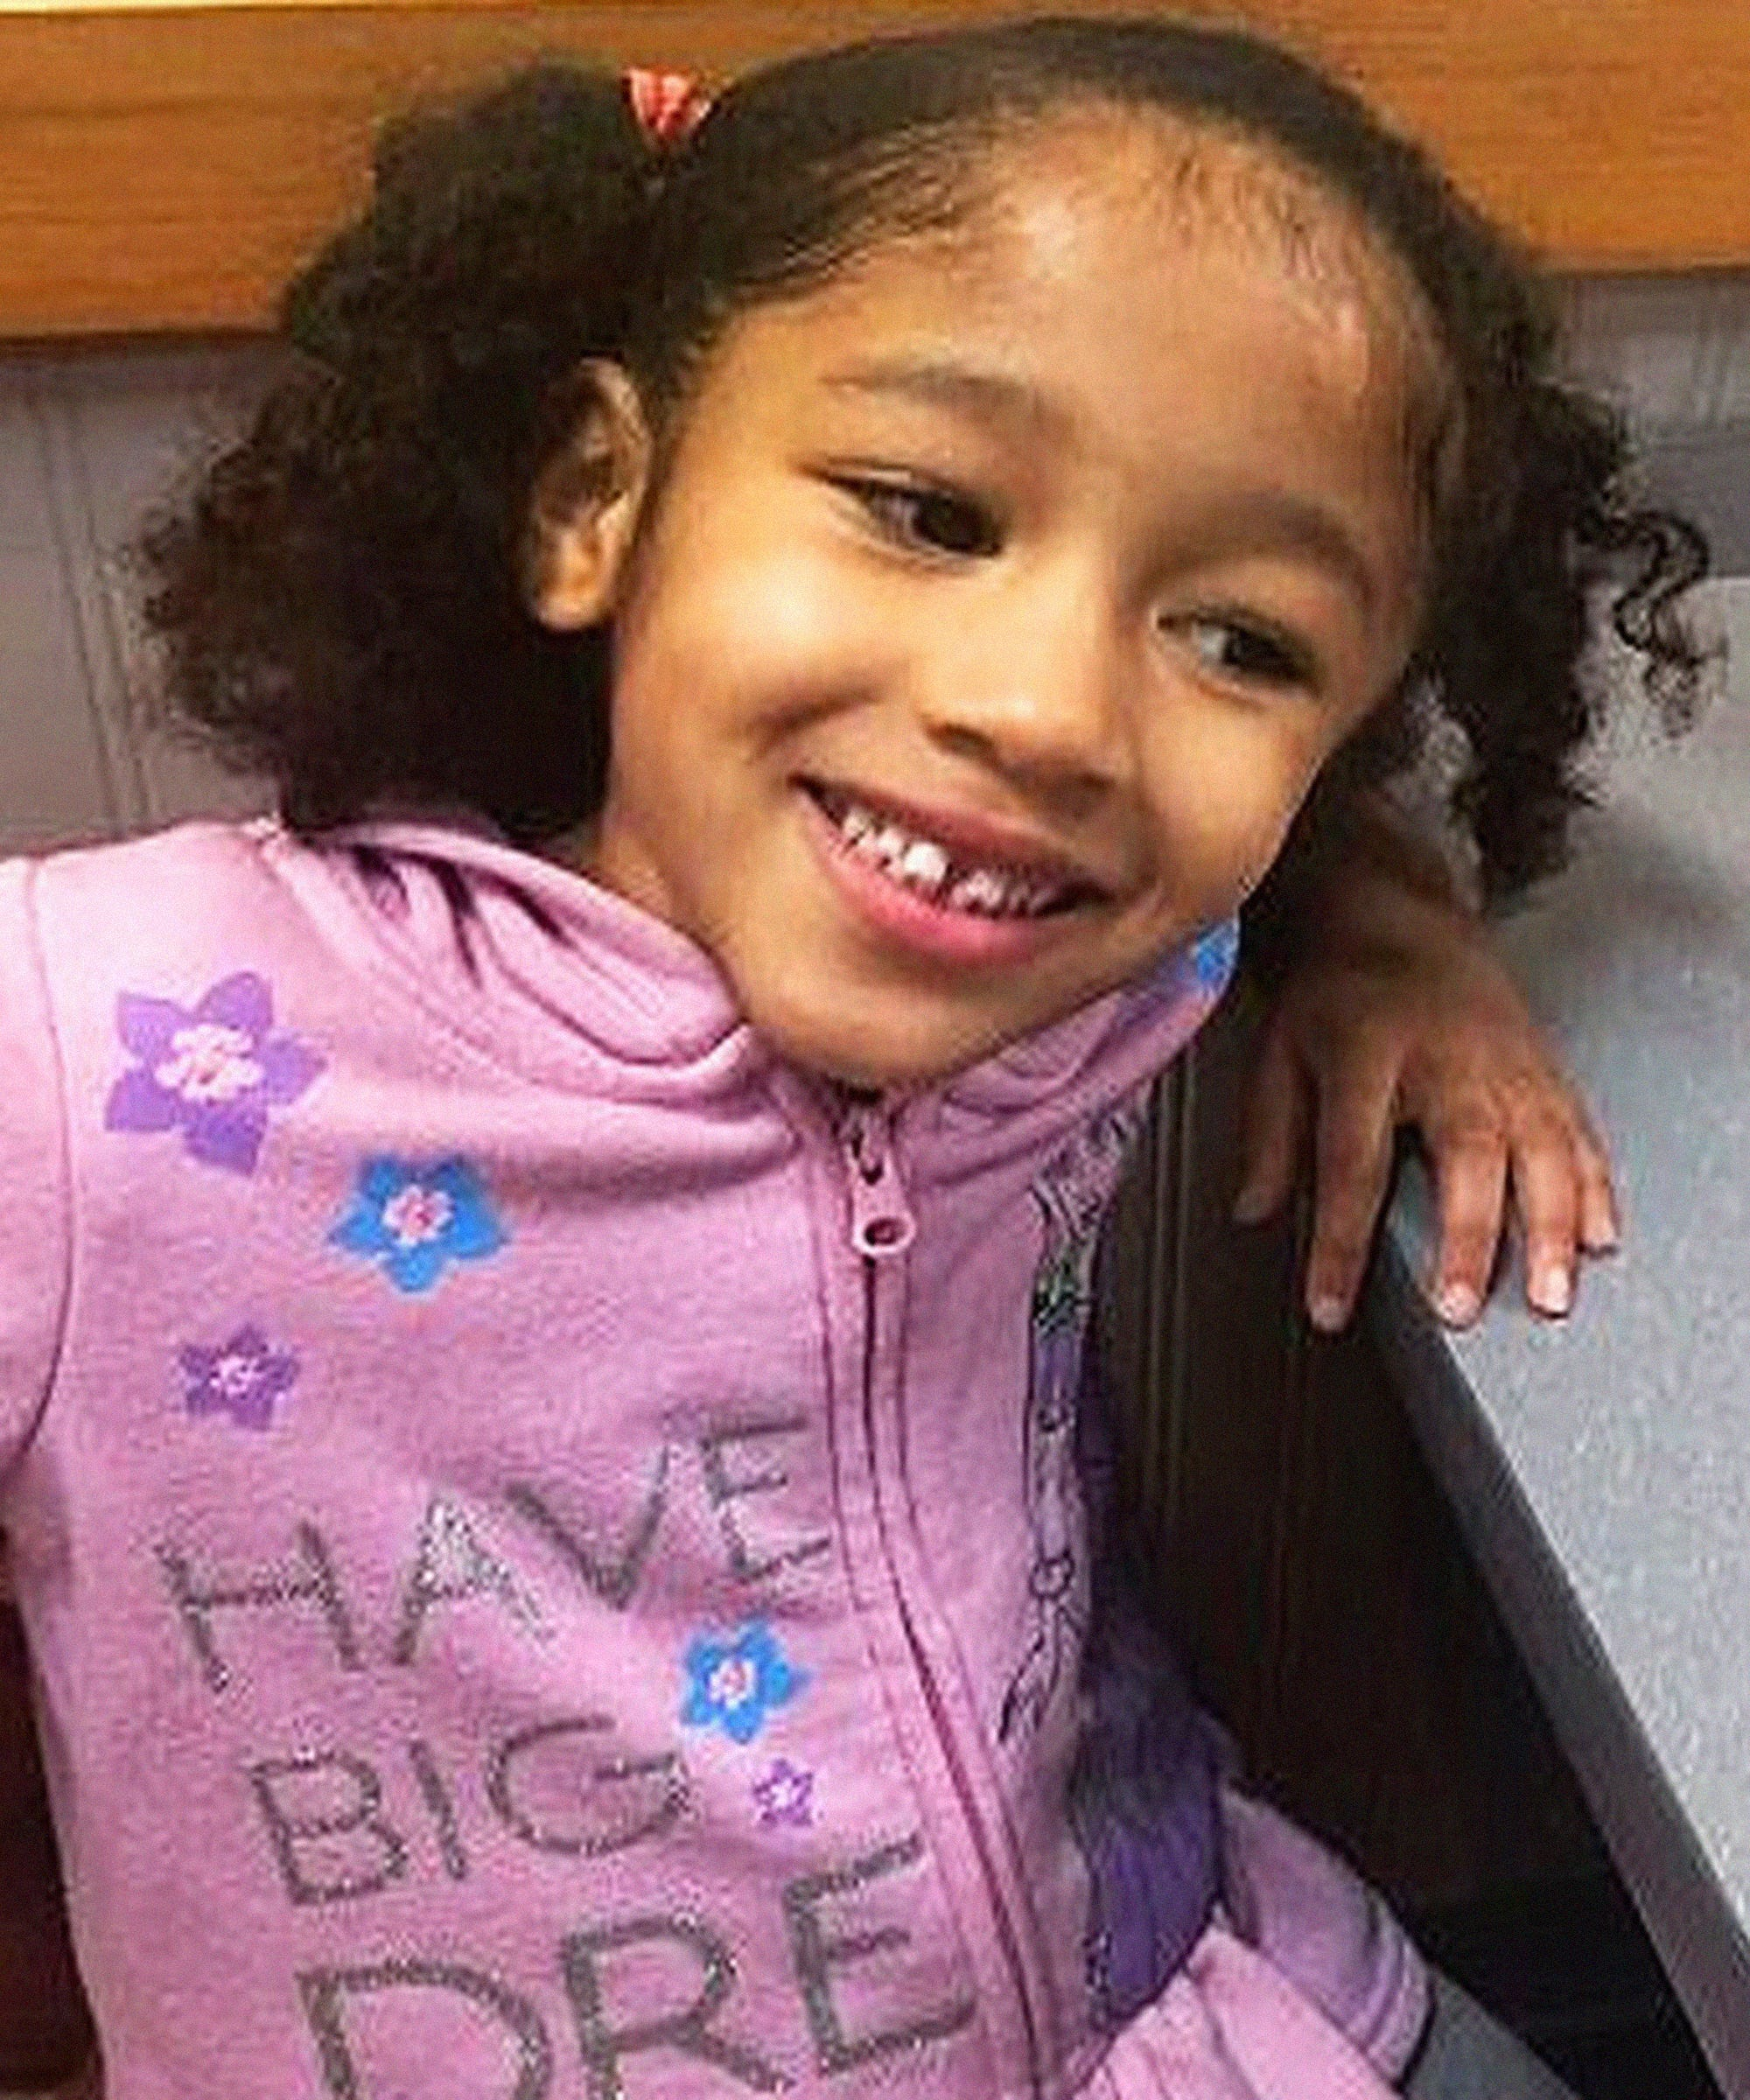 Maleah Davis' Mom Holds Out Hope That She's Alive